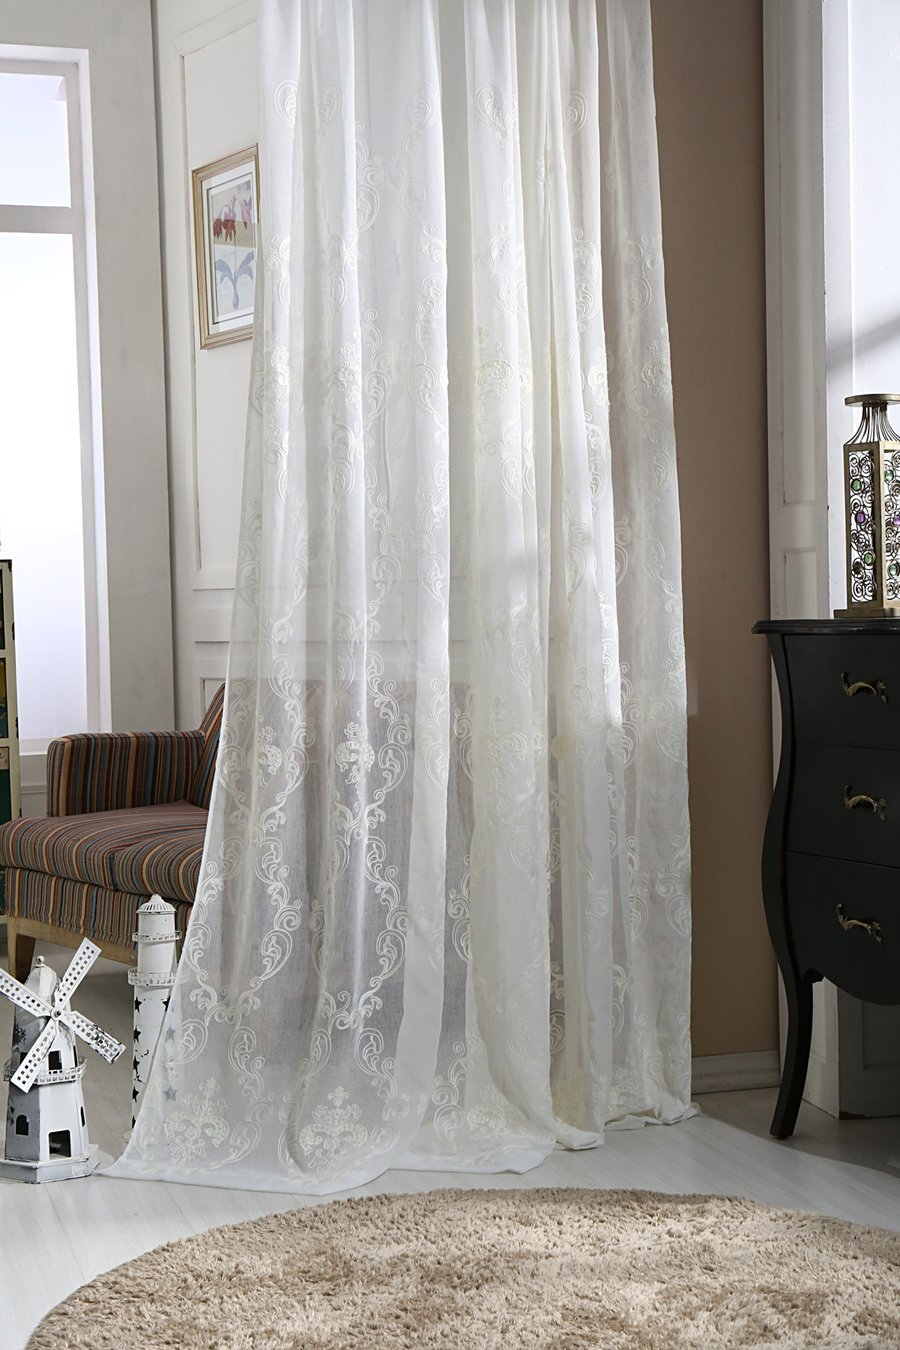 e6a23fda2e8 Get Quotations · ZWB Floral Pattern Embroidered Cotton White Sheer Curtains  Sheer Voile White Luxurious High Thread Window Curtains